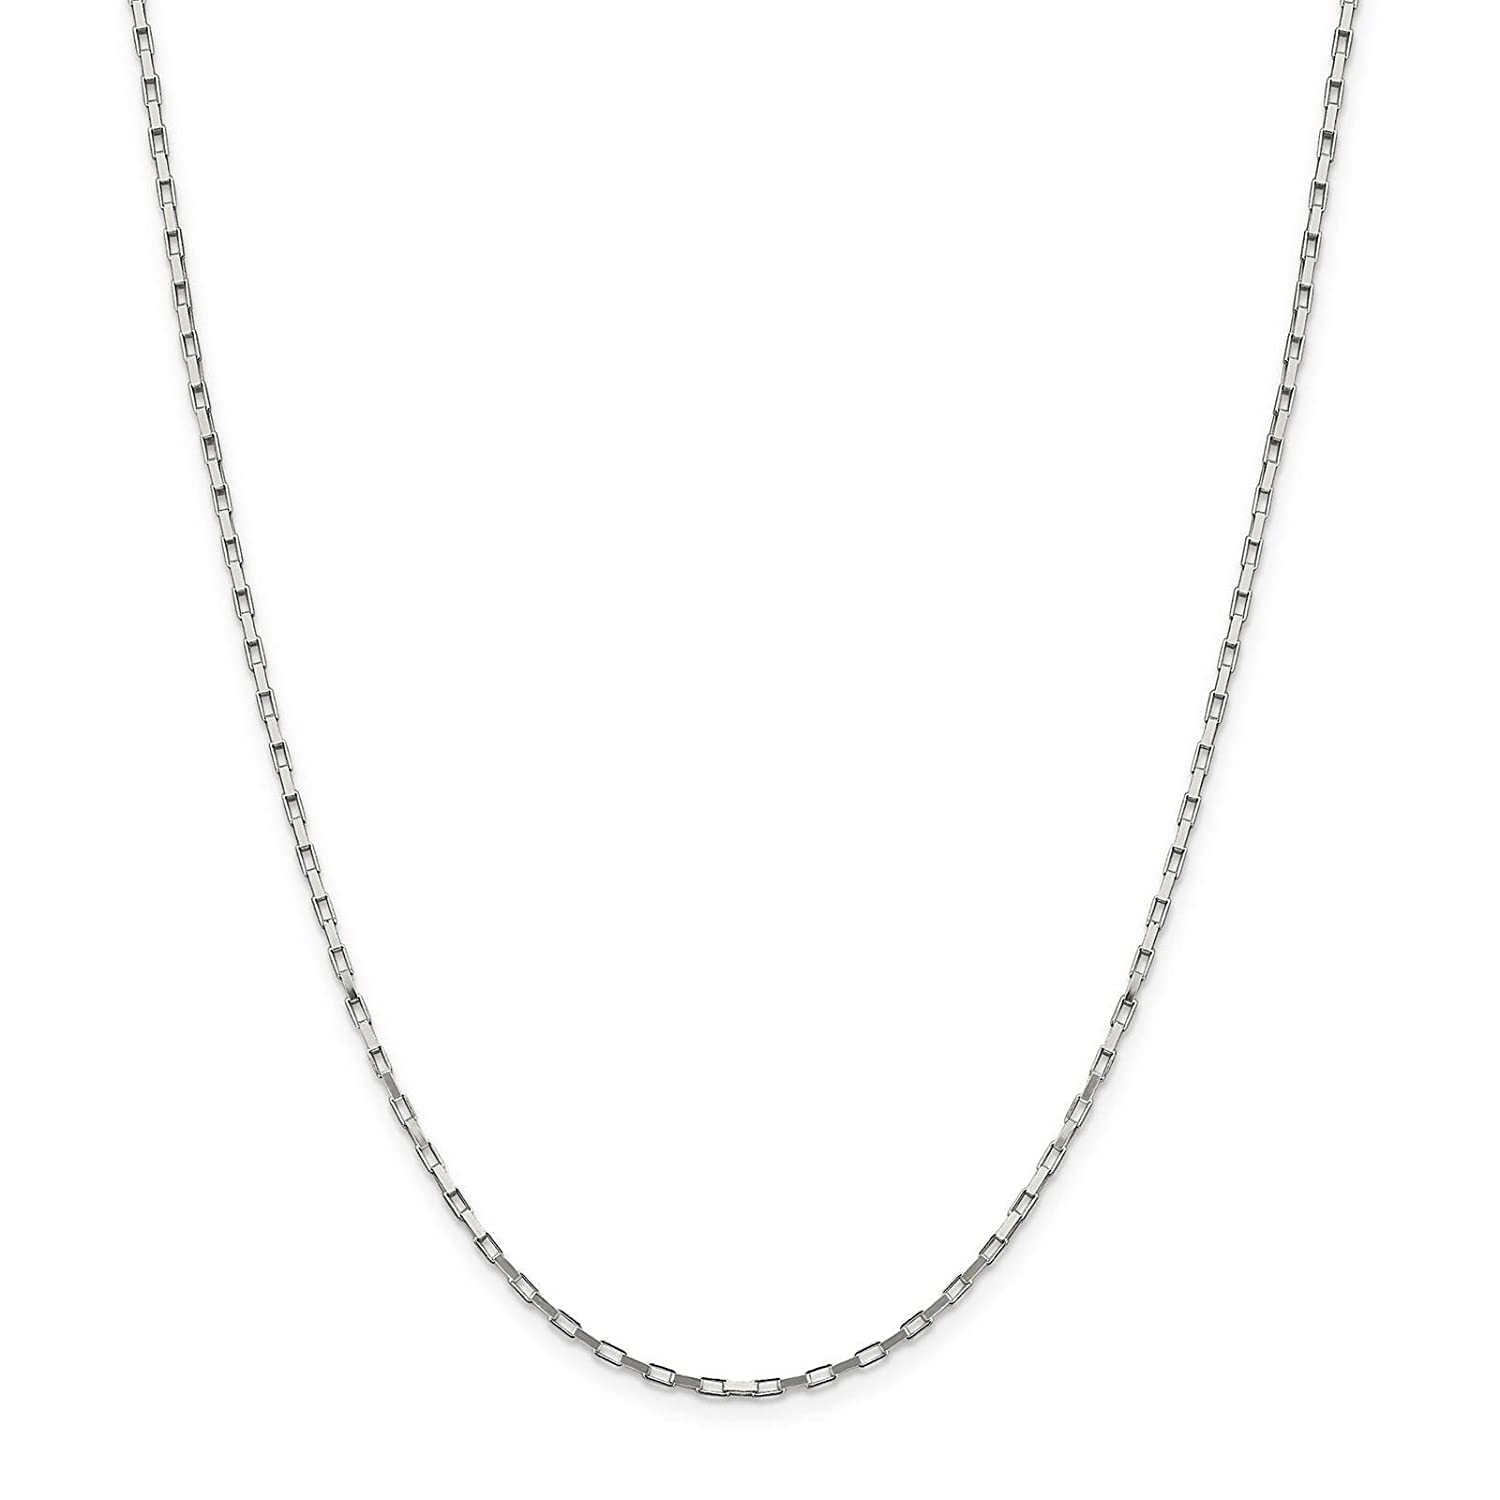 925 Sterling Silver 1.6mm Elongated Polished Box Chain Necklace 16-24